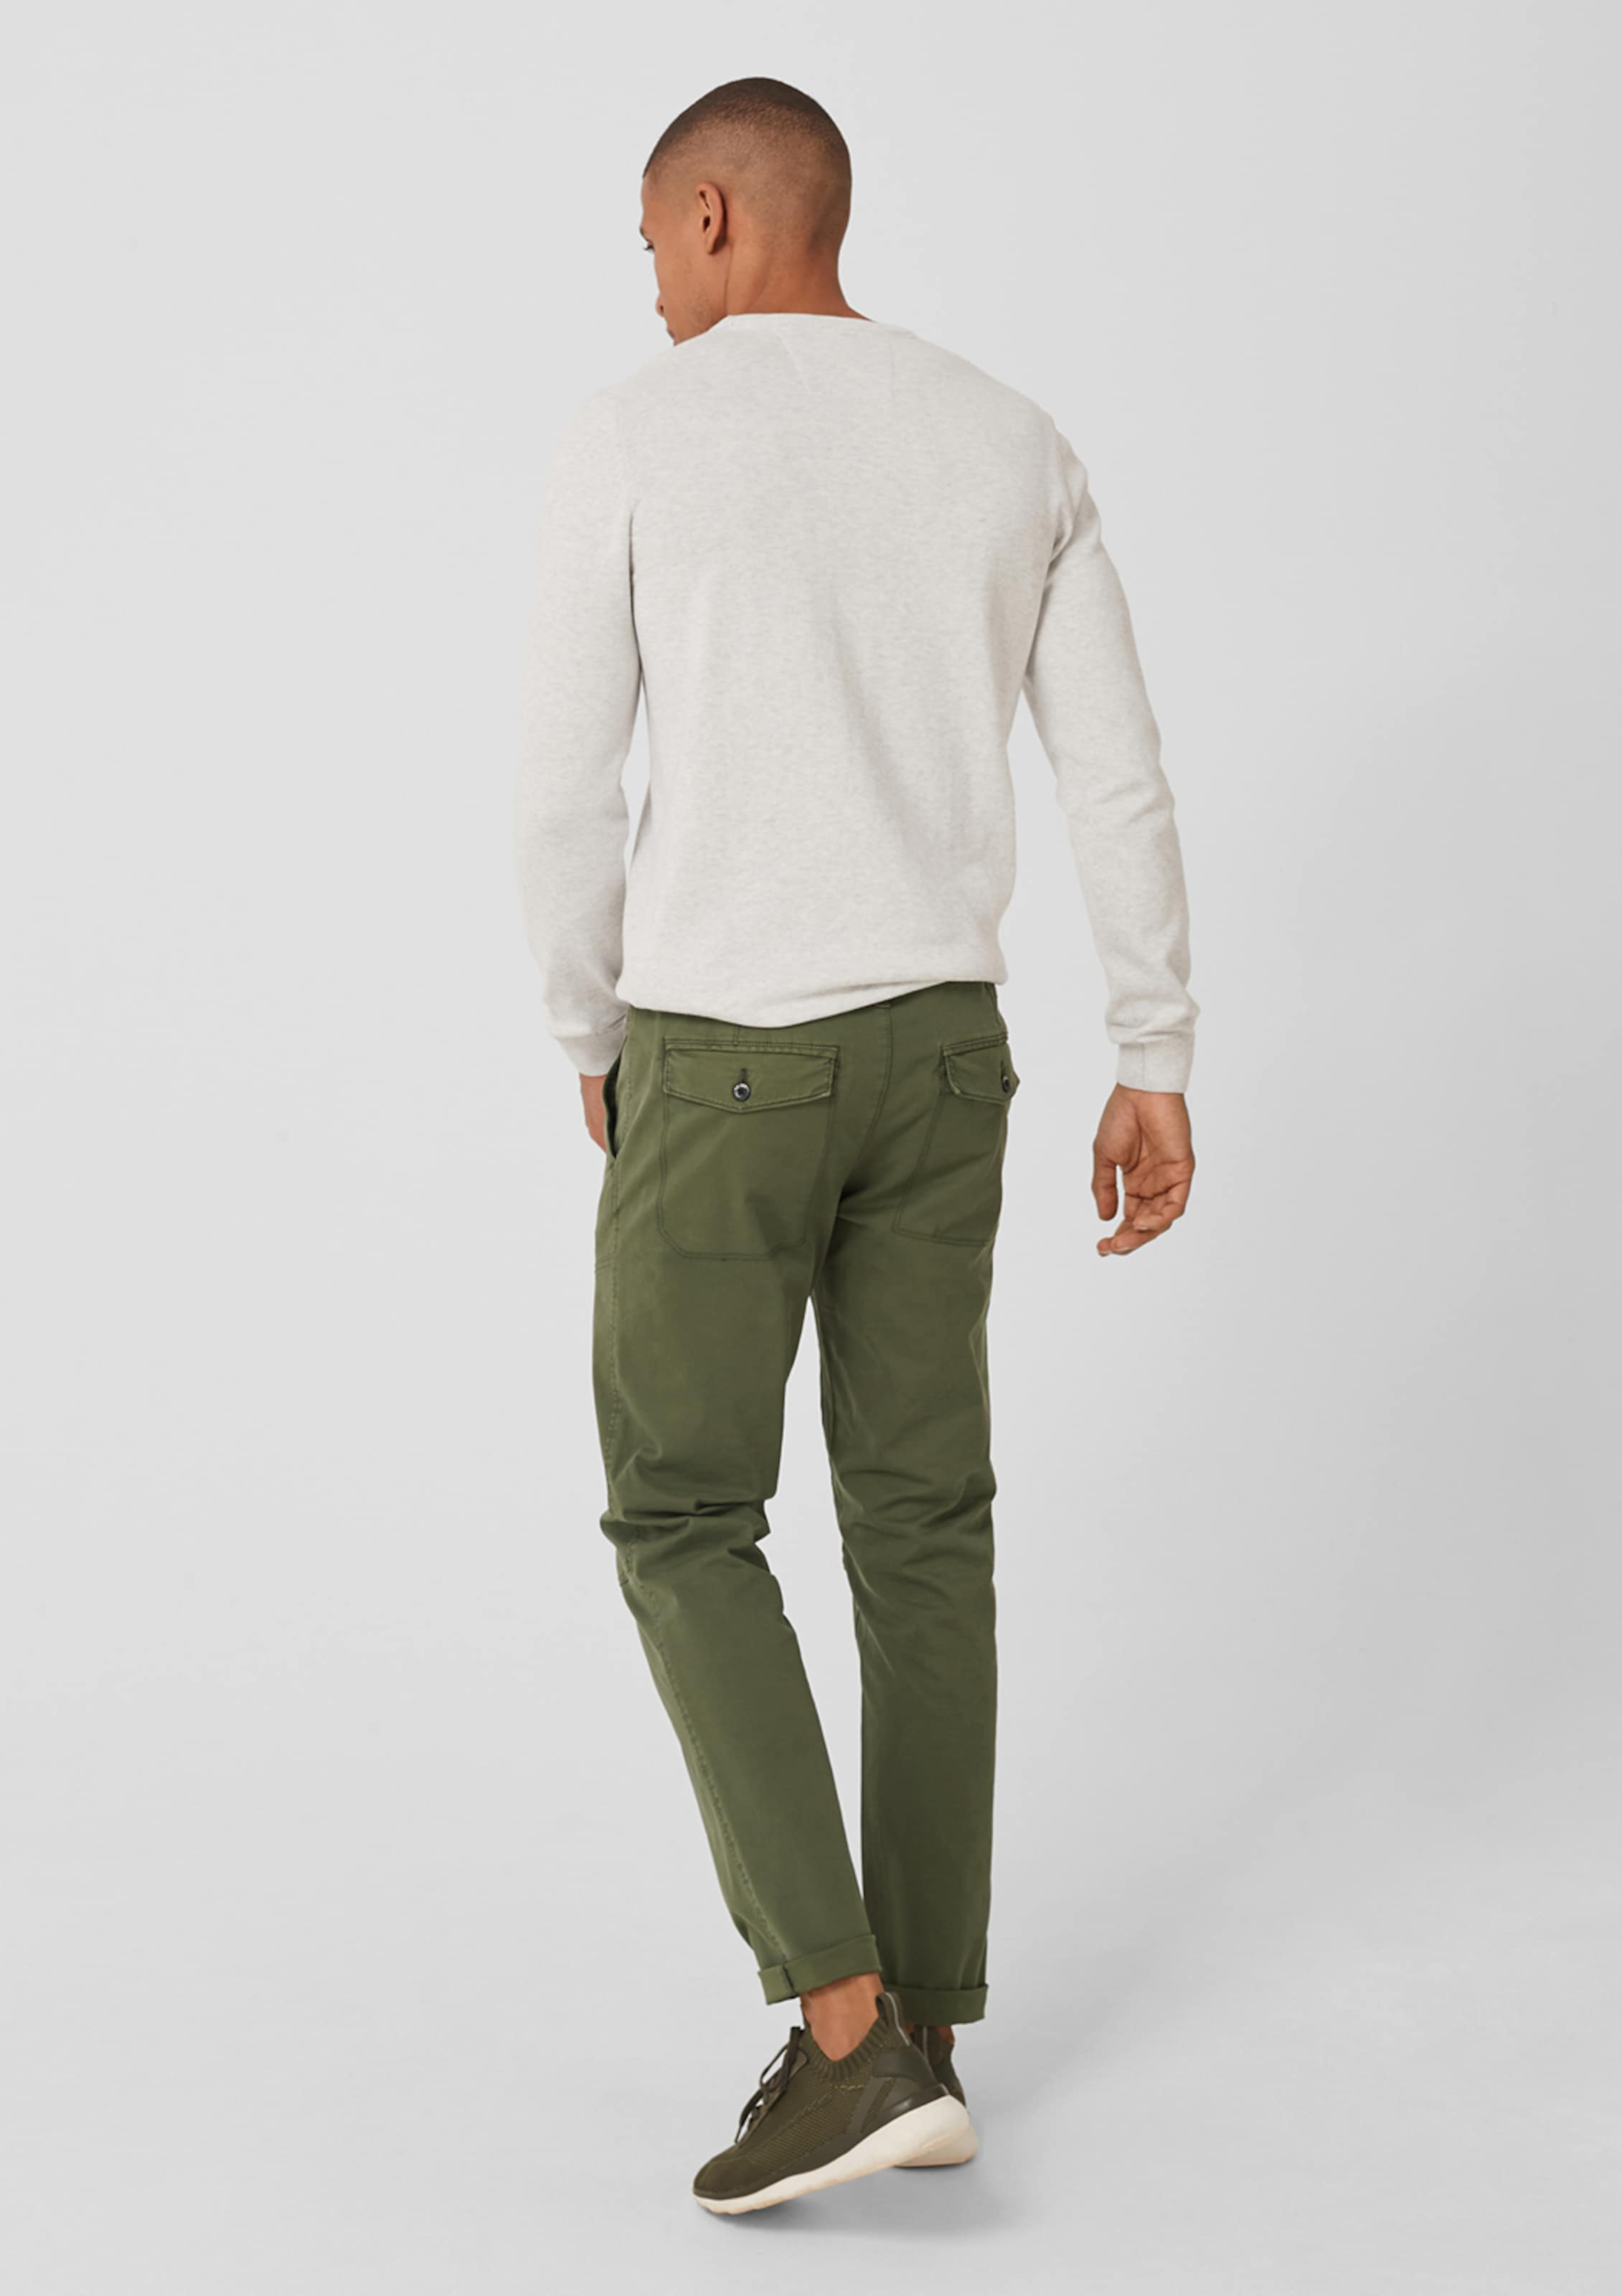 Label Tubx chino Red RegularStretch S oliver In Oliv FKuJTl1c35